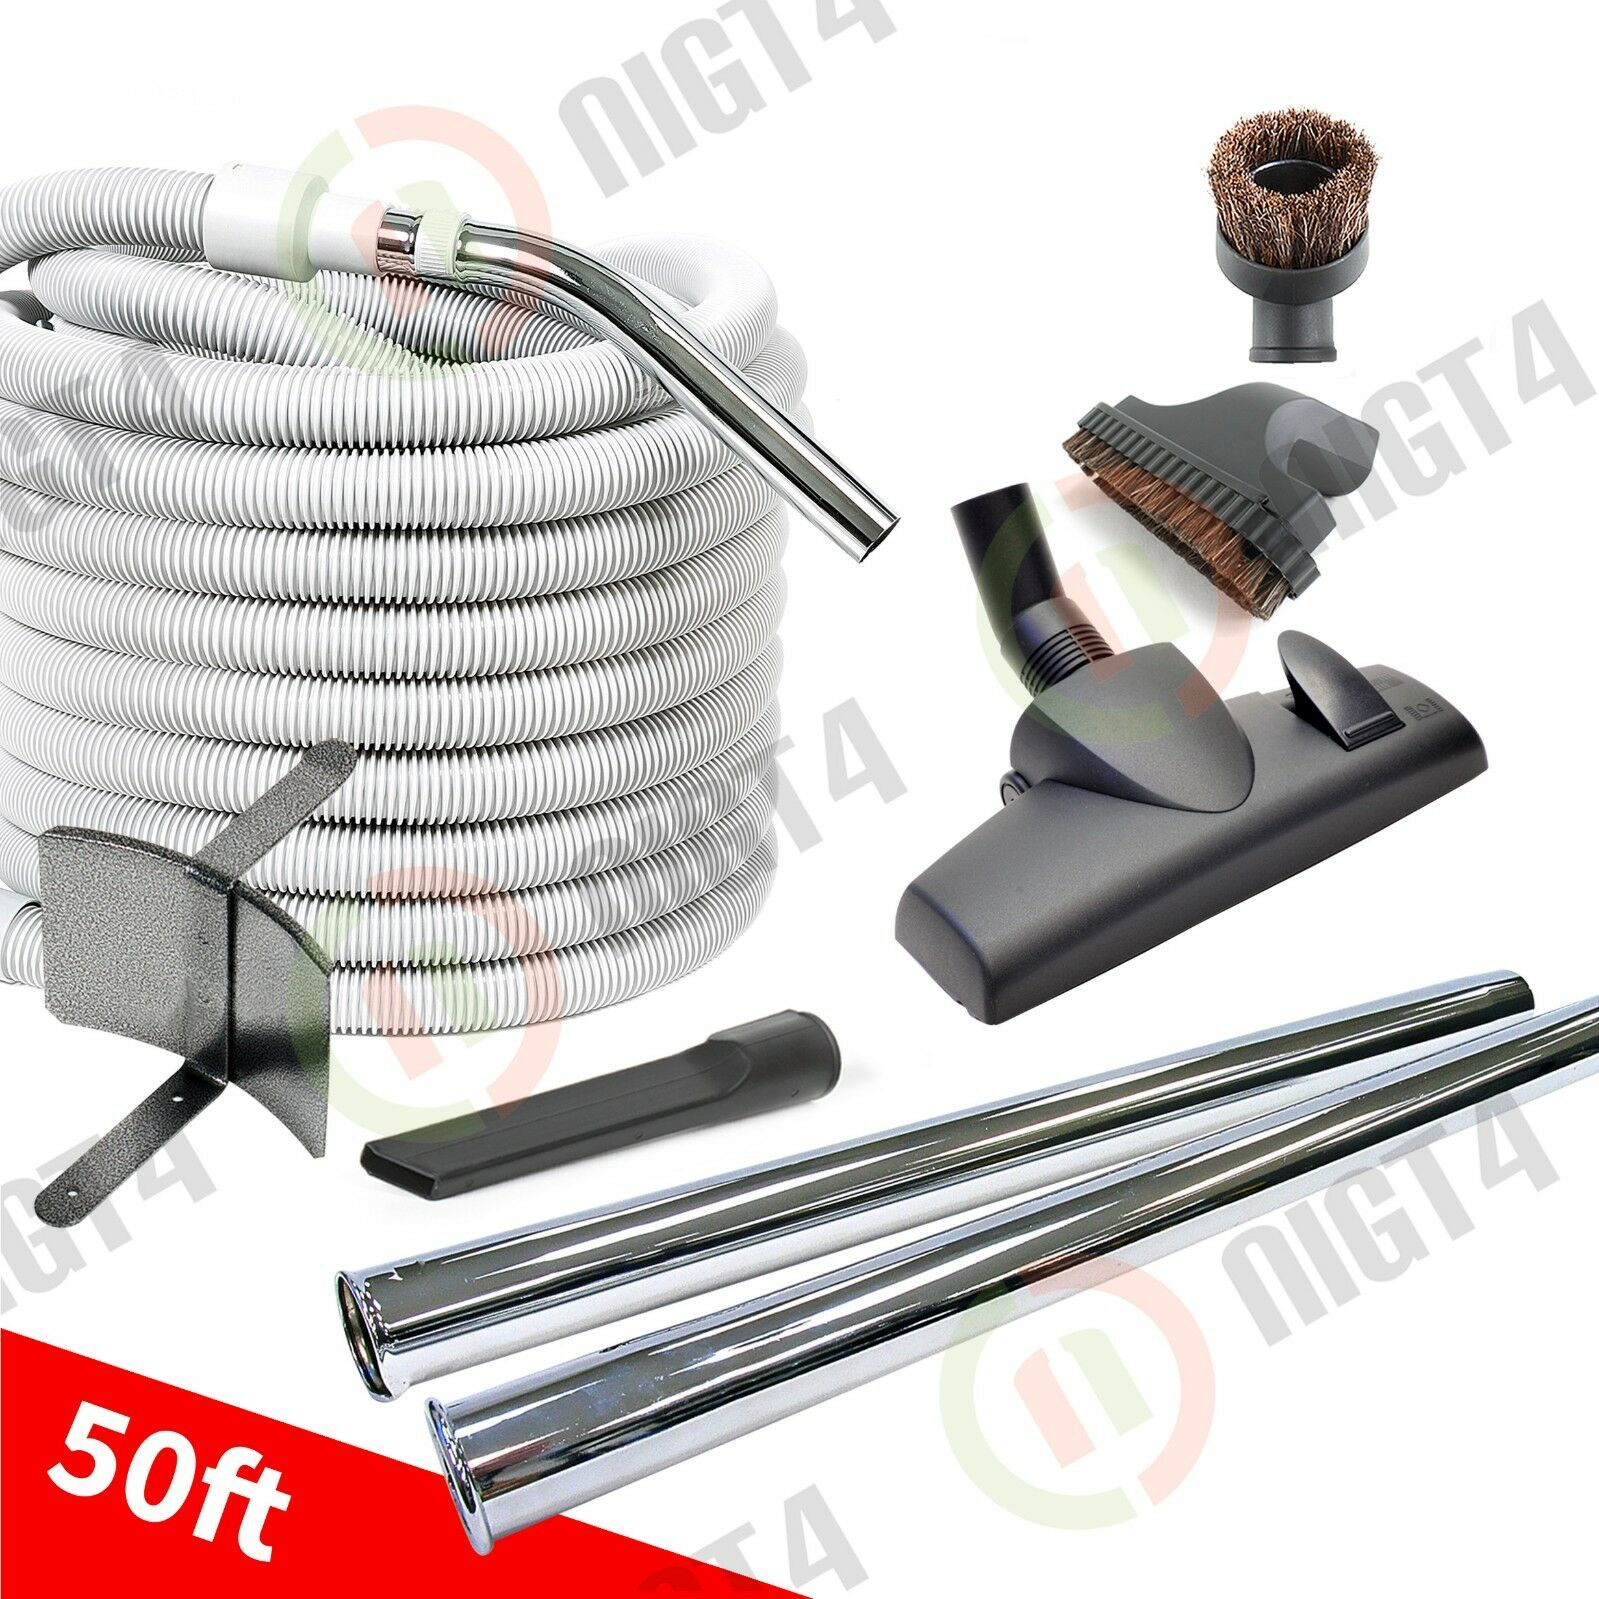 NeW   50' Deluxe Central Vac Vacuum Hose & Attachment Kit- SuperkiT